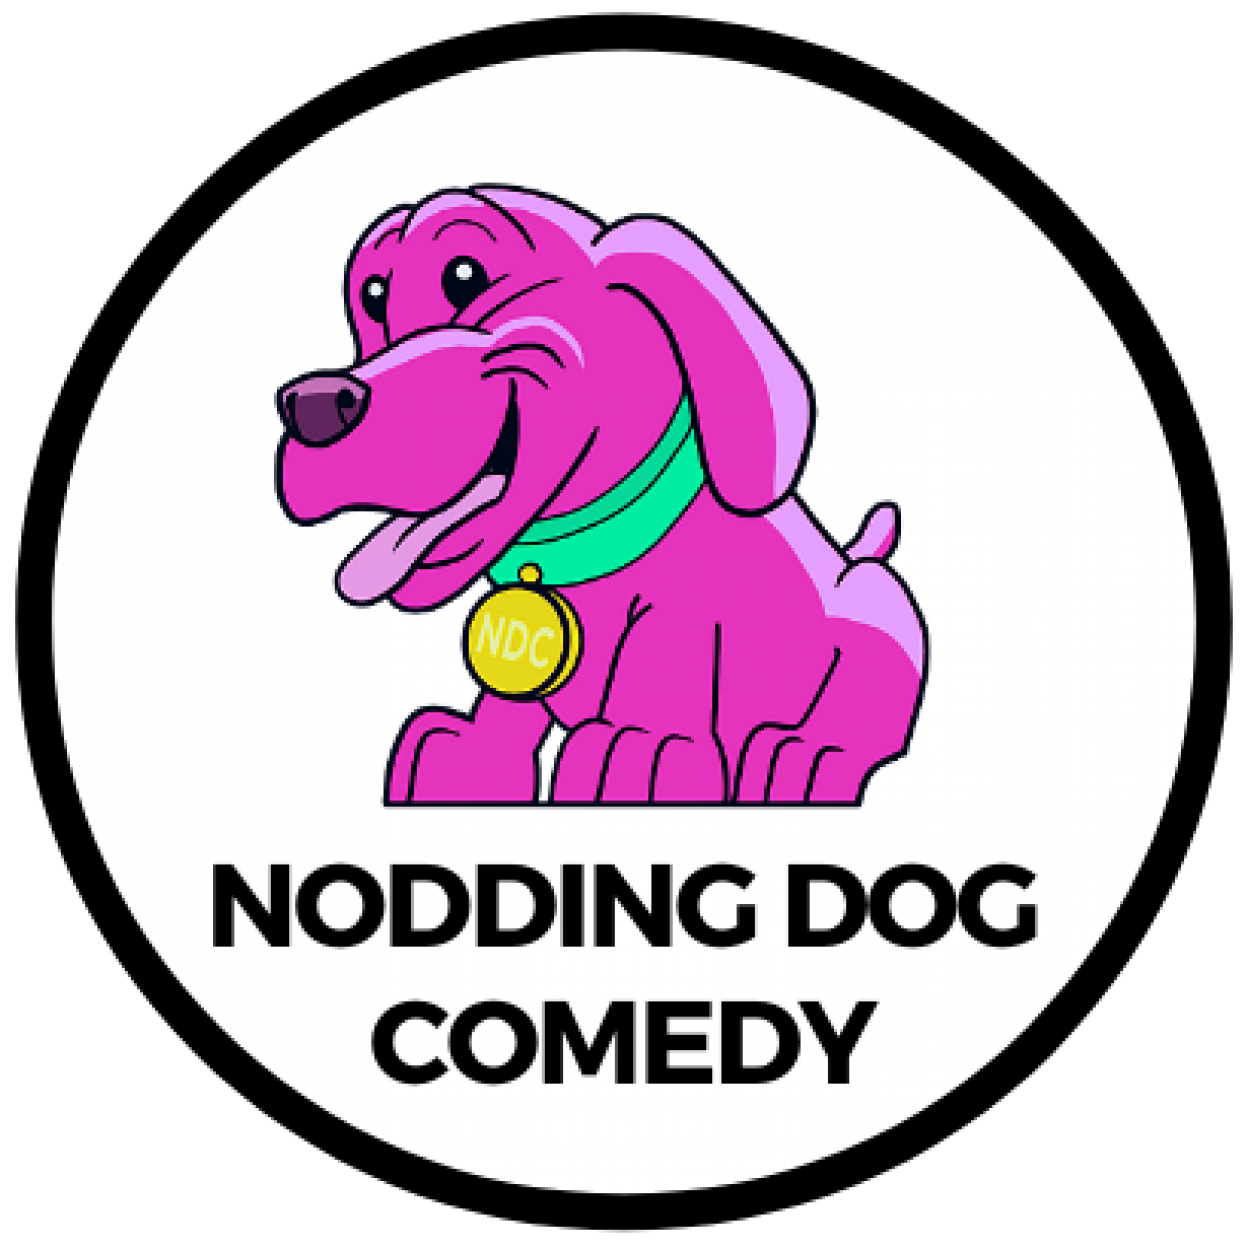 NODDING DOG COMEDY